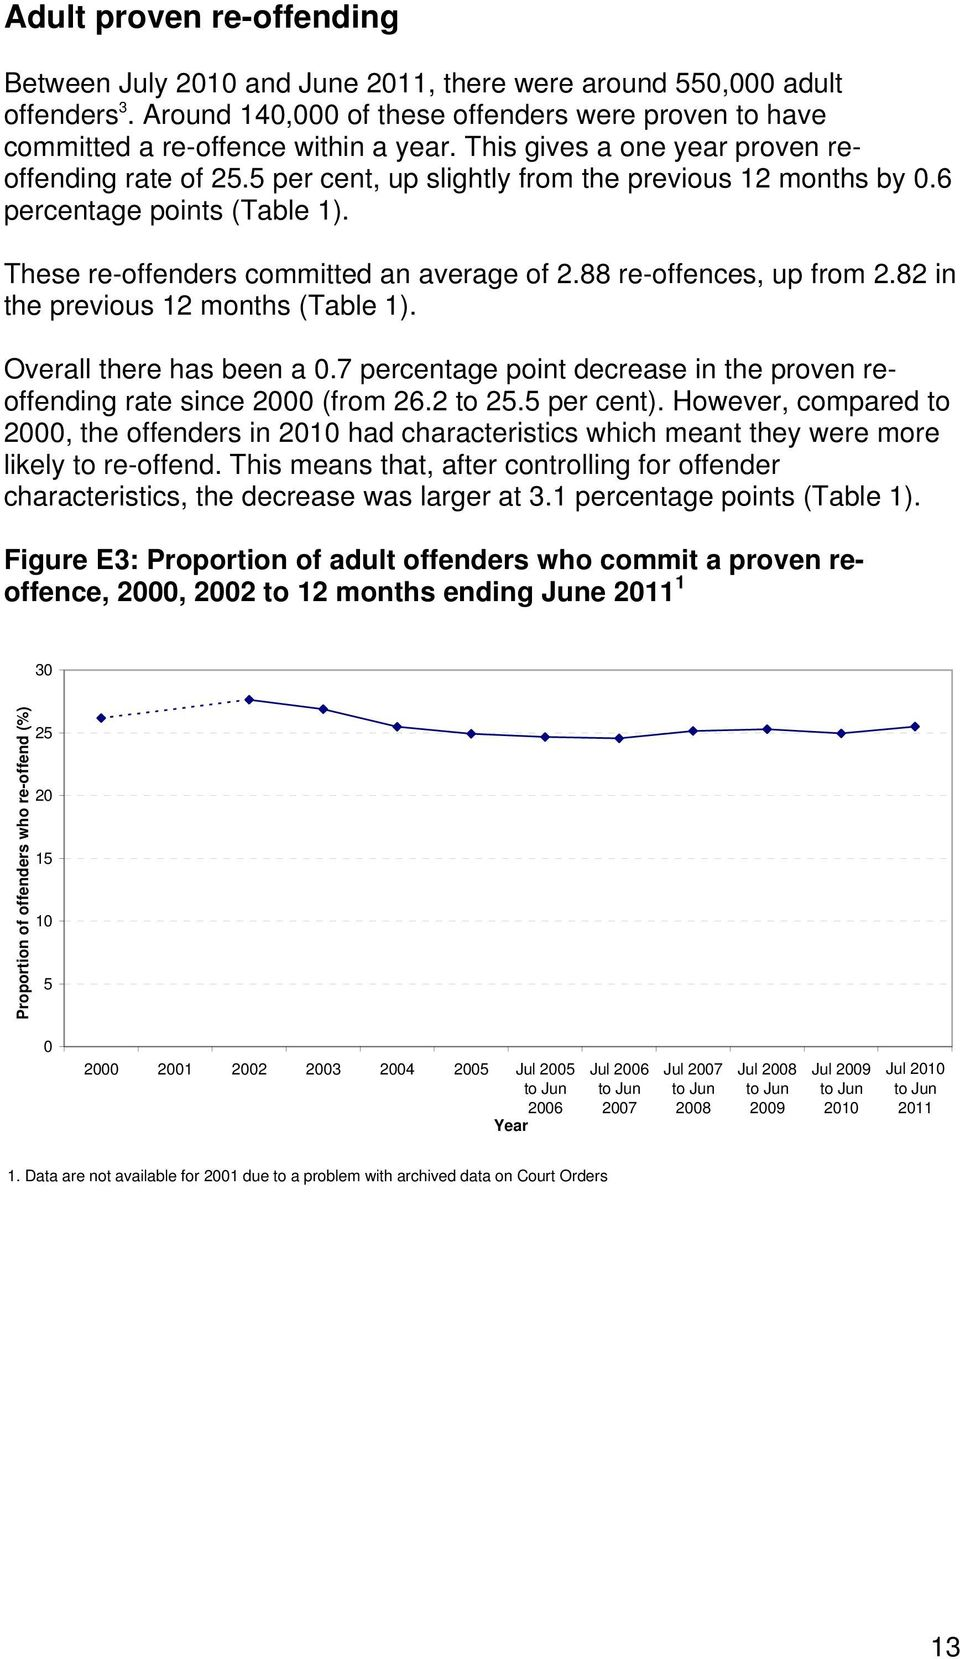 88 re-offences, up from 2.82 in the previous 12 months (Table 1). Overall there has been a 0.7 percentage point decrease in the proven reoffending rate since 2000 (from 26.2 to 25.5 per cent).